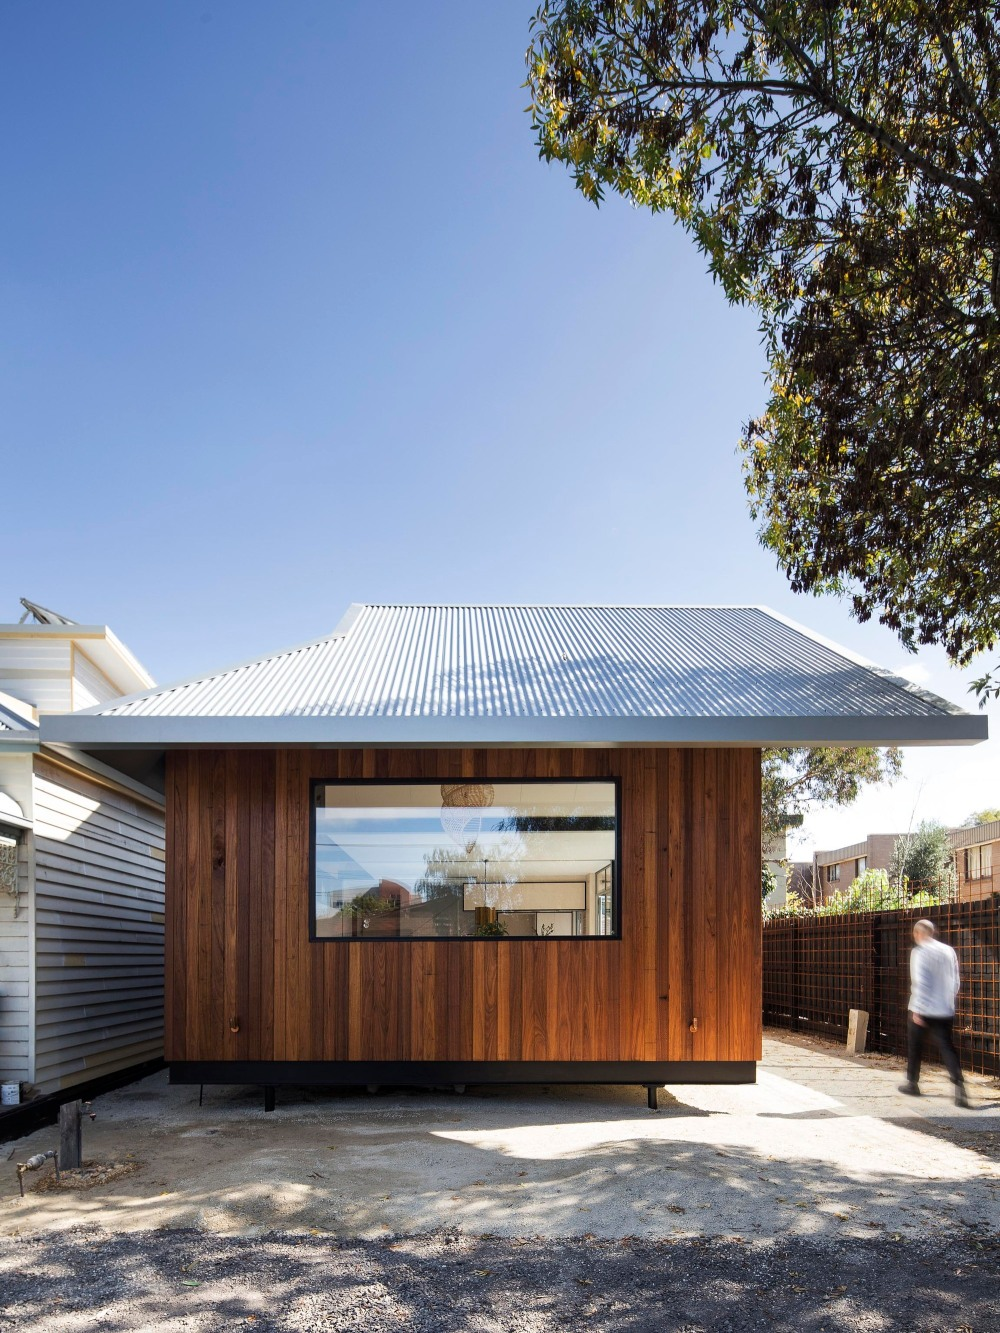 seddon-house-osk-architects-66739b66